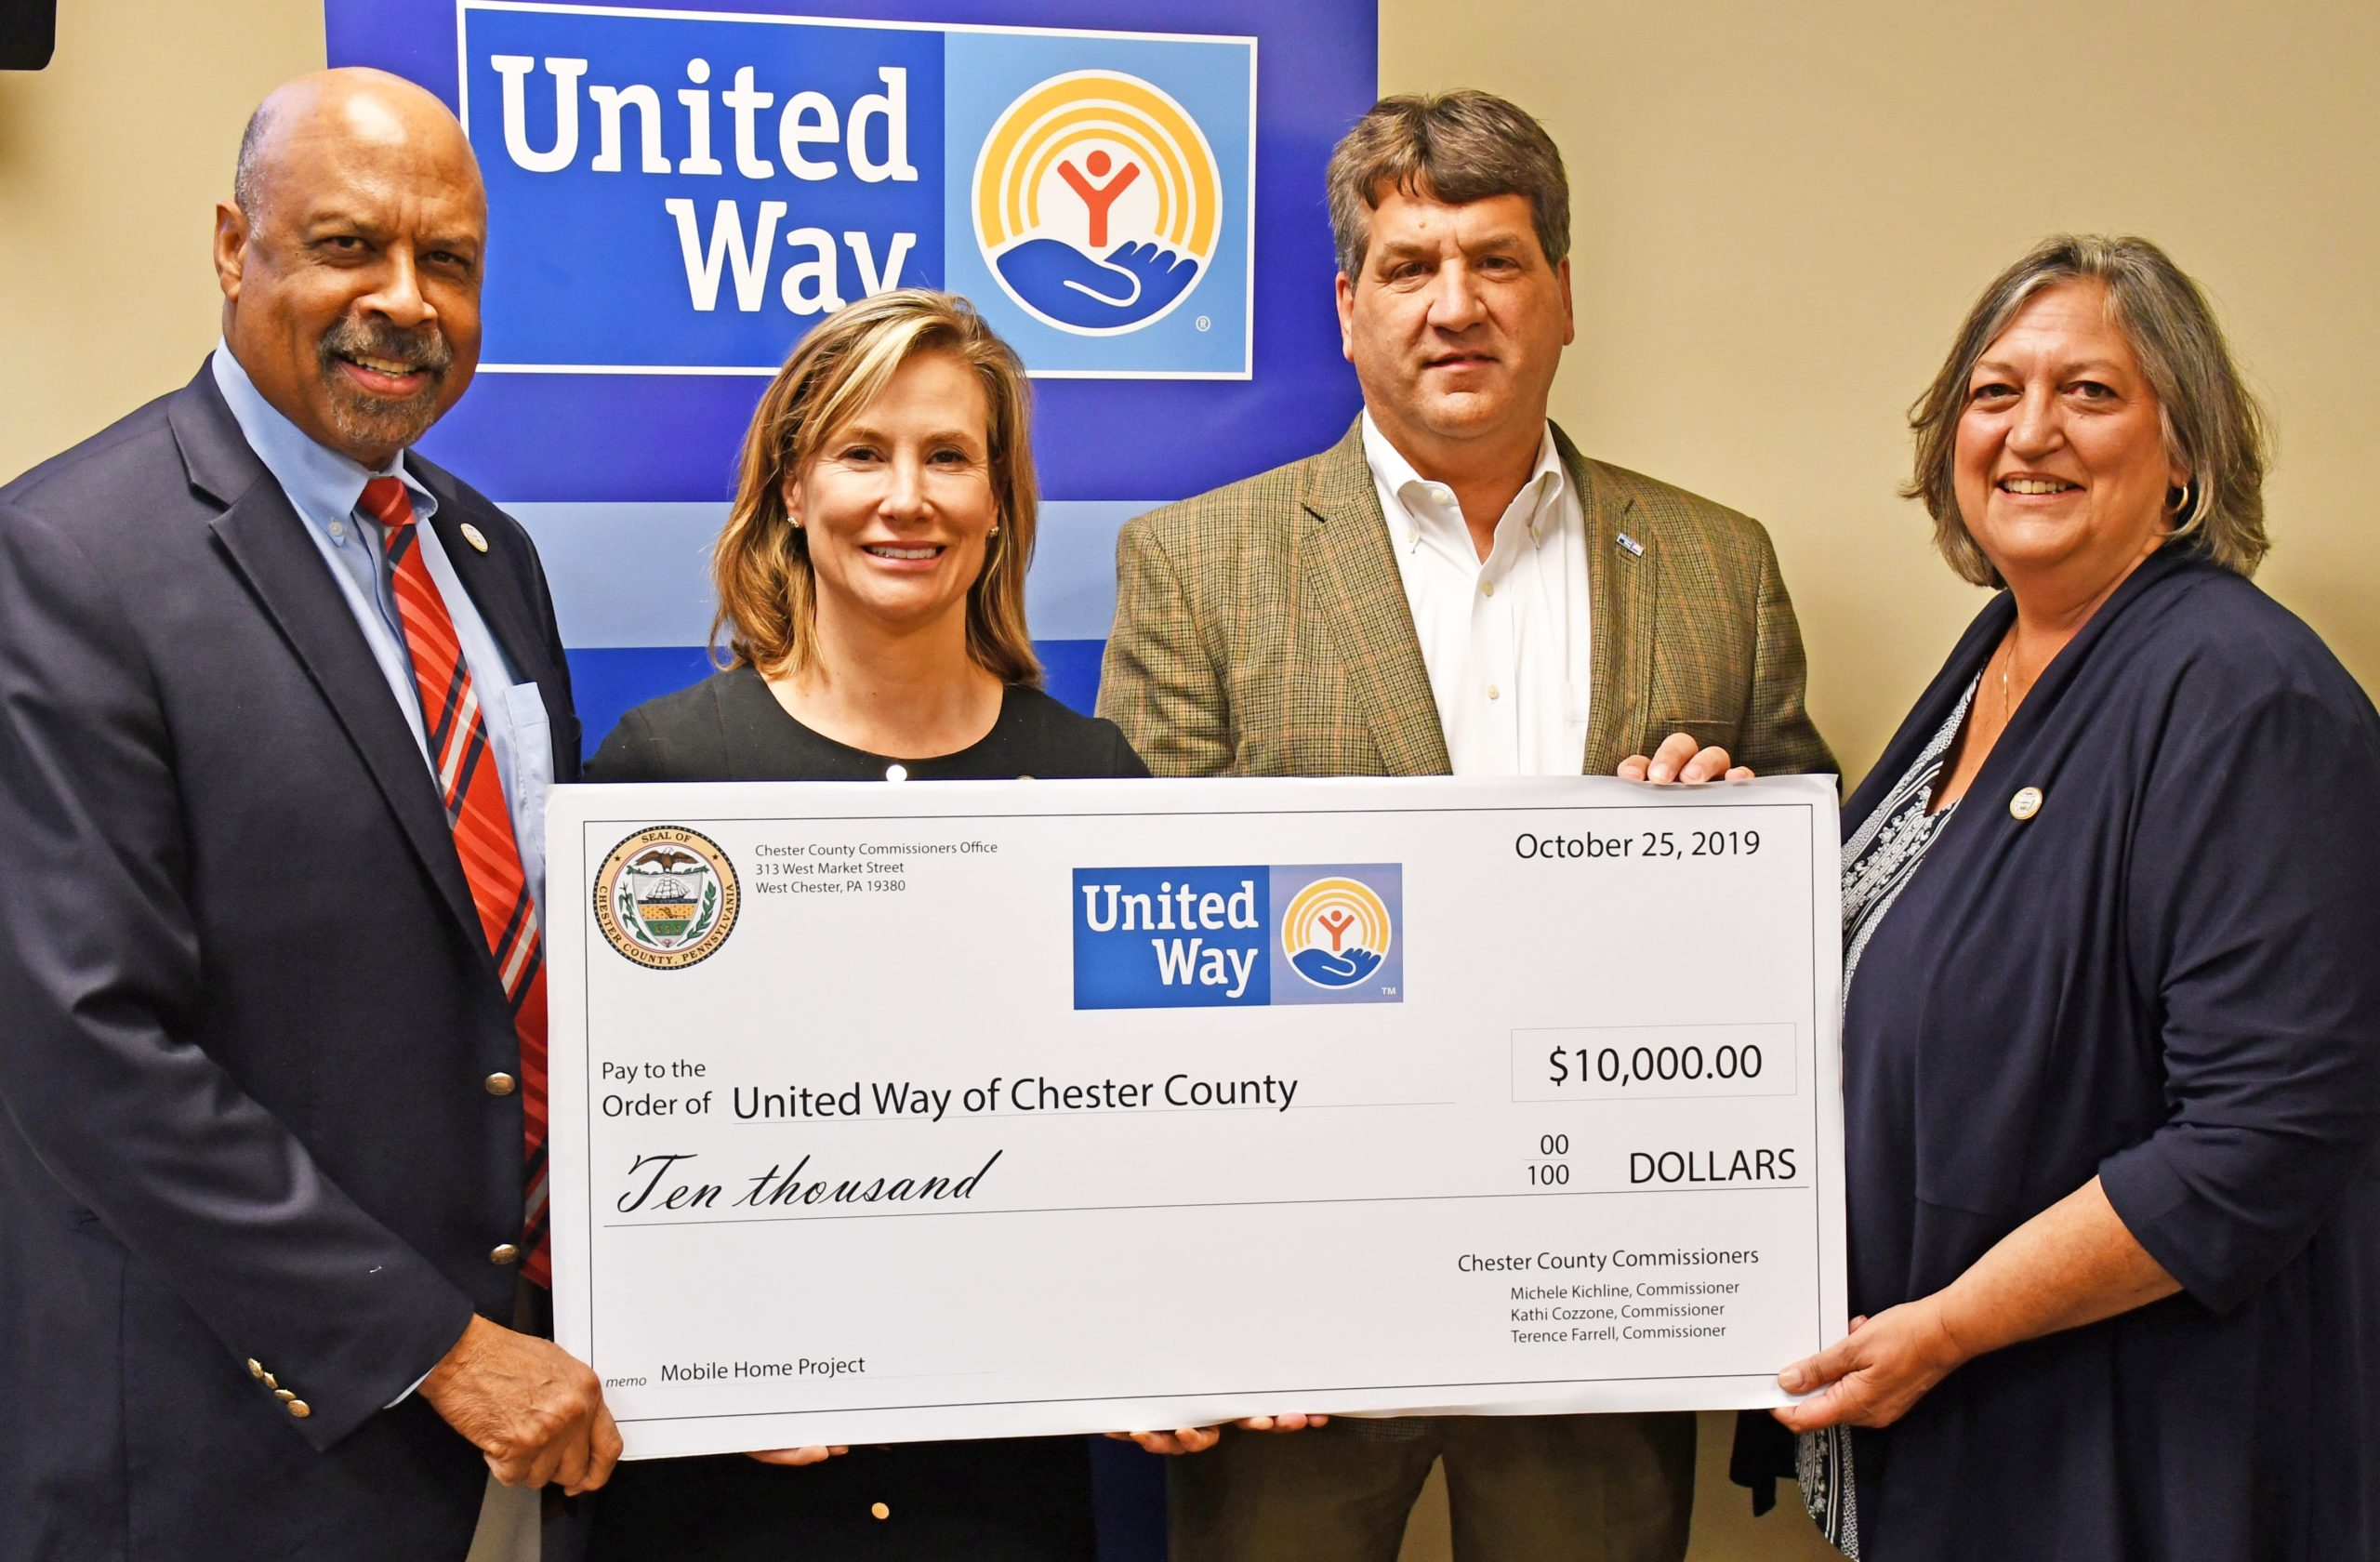 United Way's Mobile Home Reassessment Project Benefits Residents 'Who Have Been Unfairly Taxed'